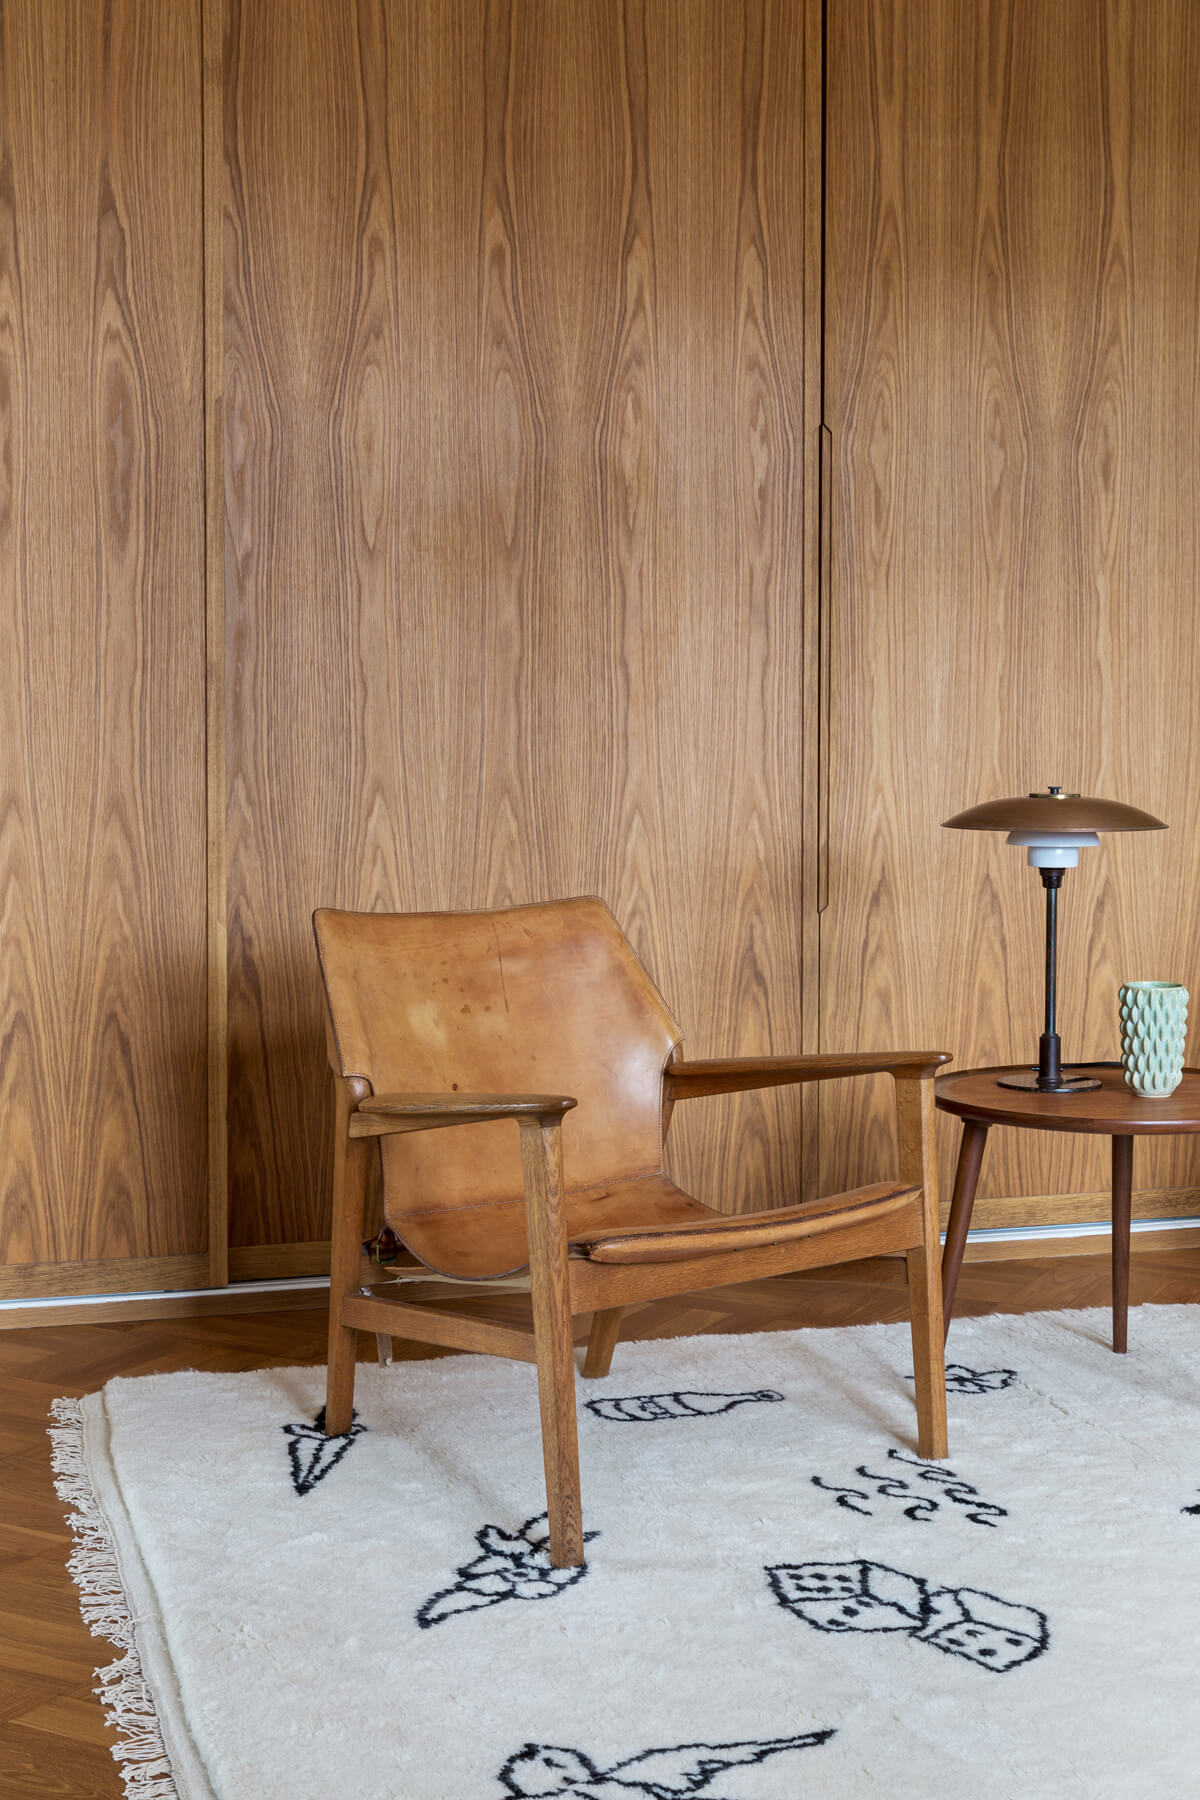 Shaggy Nomad in color cream styled with a leather and wood armchair.